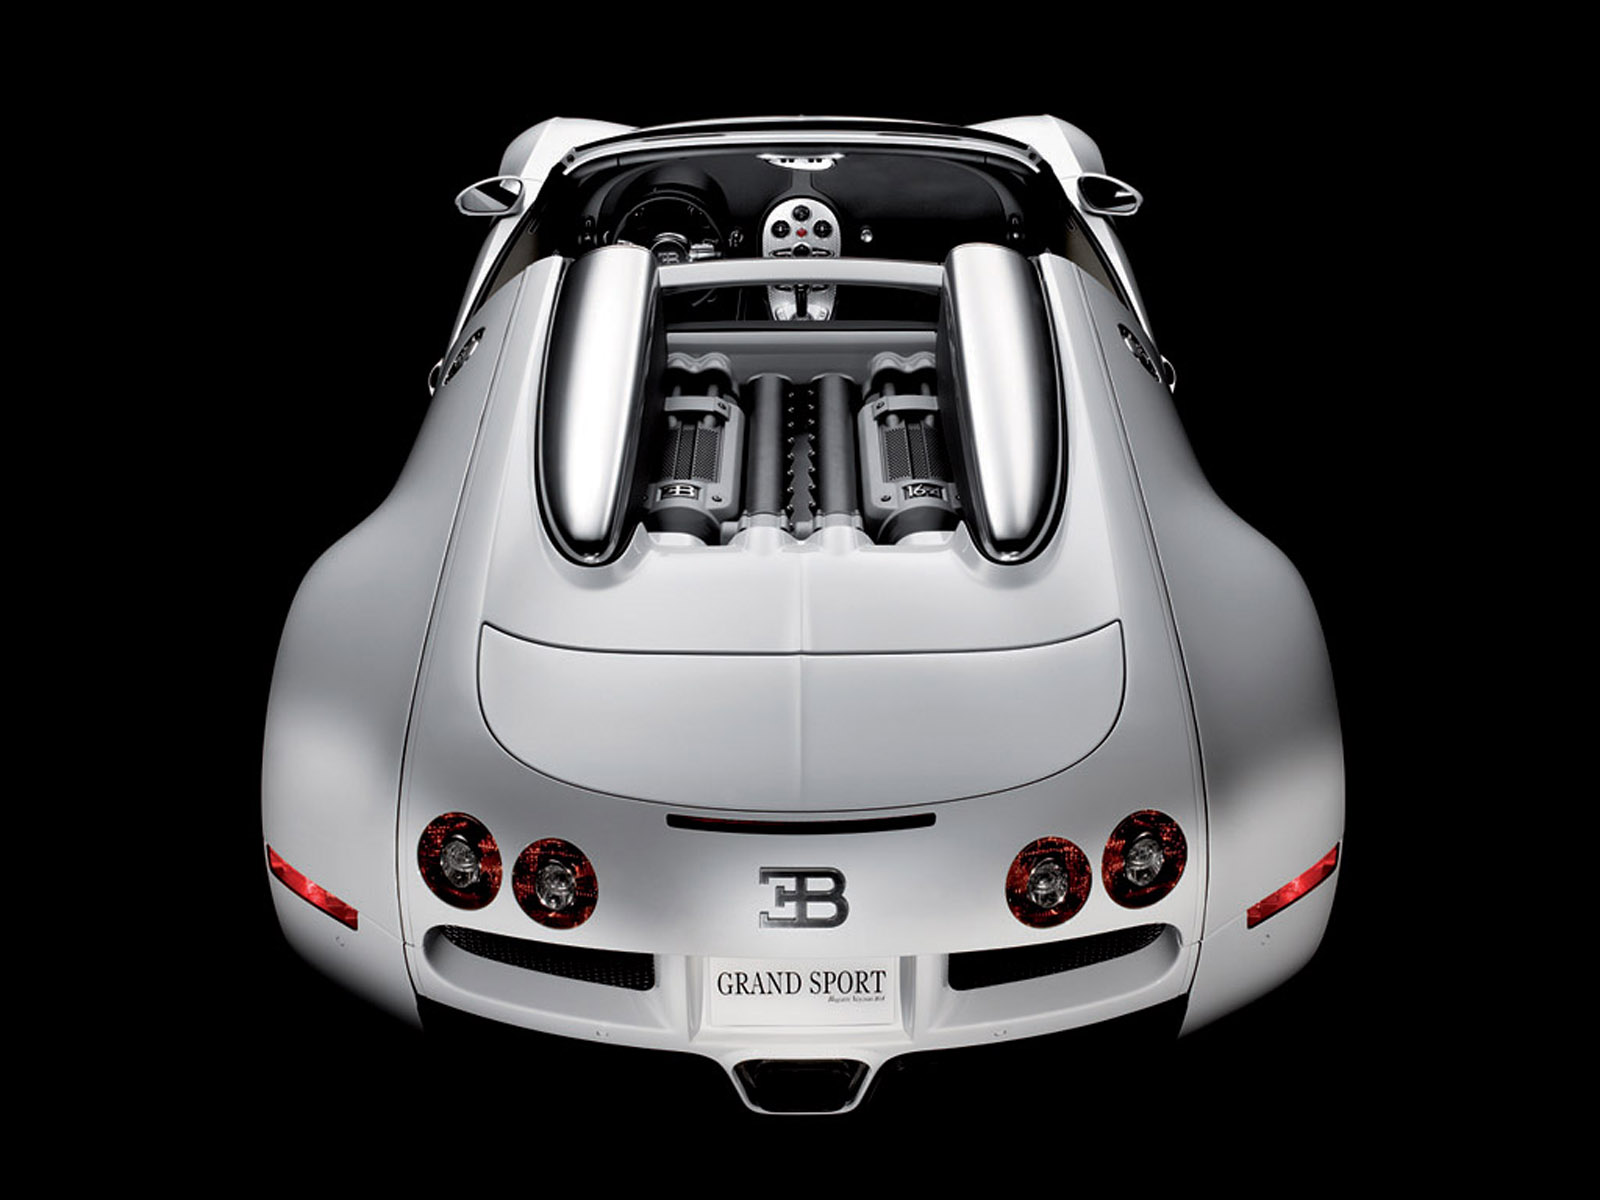 bugatti-164-veyron-grand-sport-back-view Cozy Bugatti Veyron Grand Sport Vitesse Engine Cars Trend